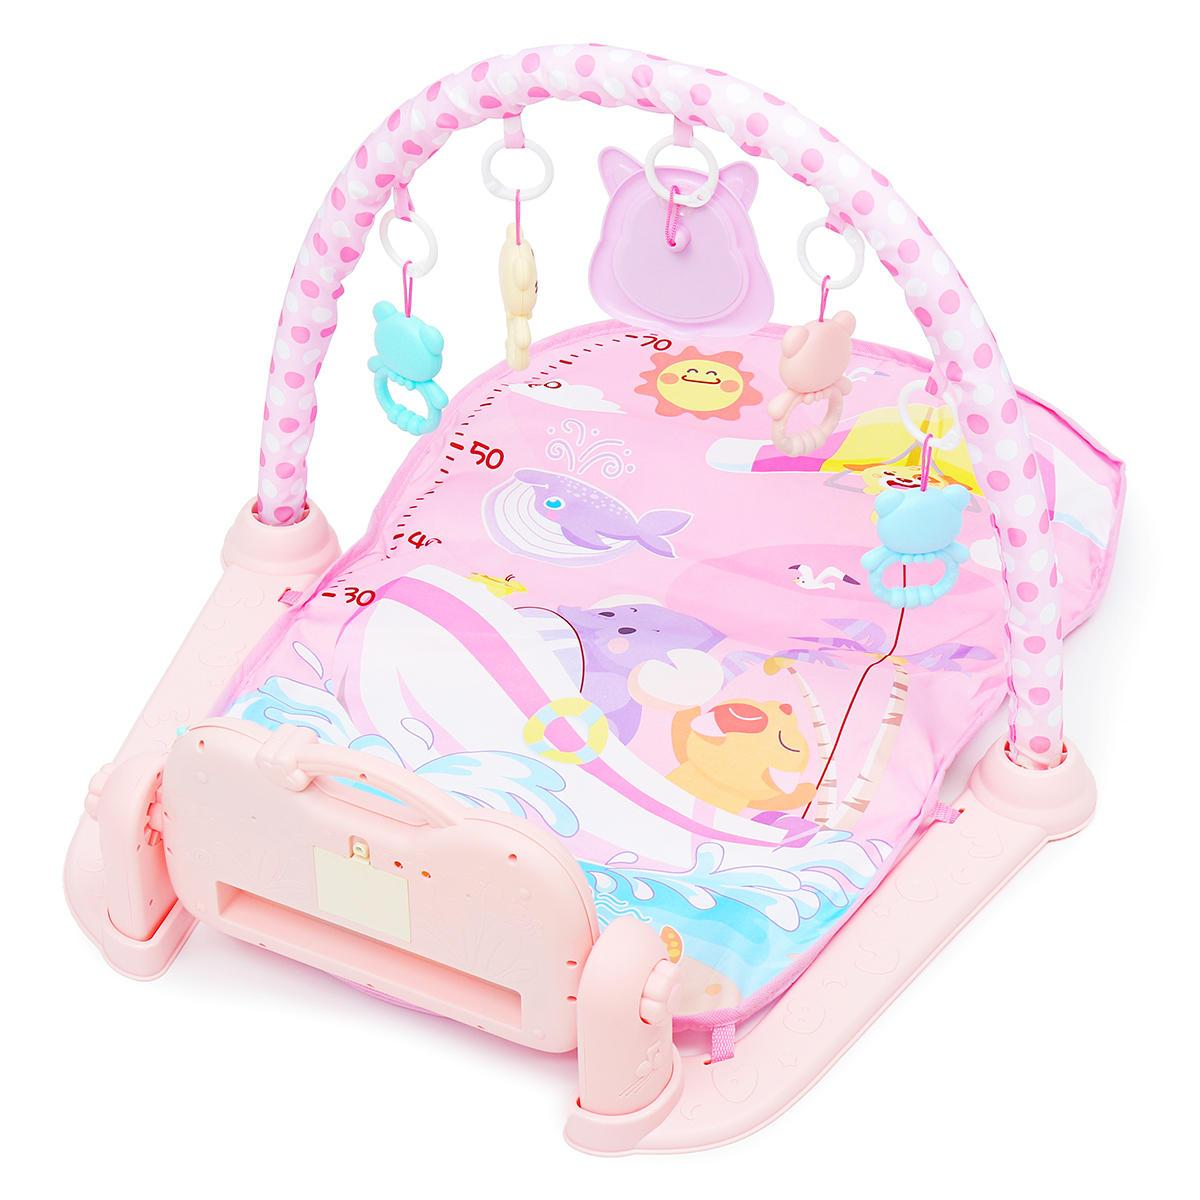 3 In 1 Baby Infant Gym Play Mat Fitness Music Piano Pedal Educational Toys USB Baby Play Mat  - Pink